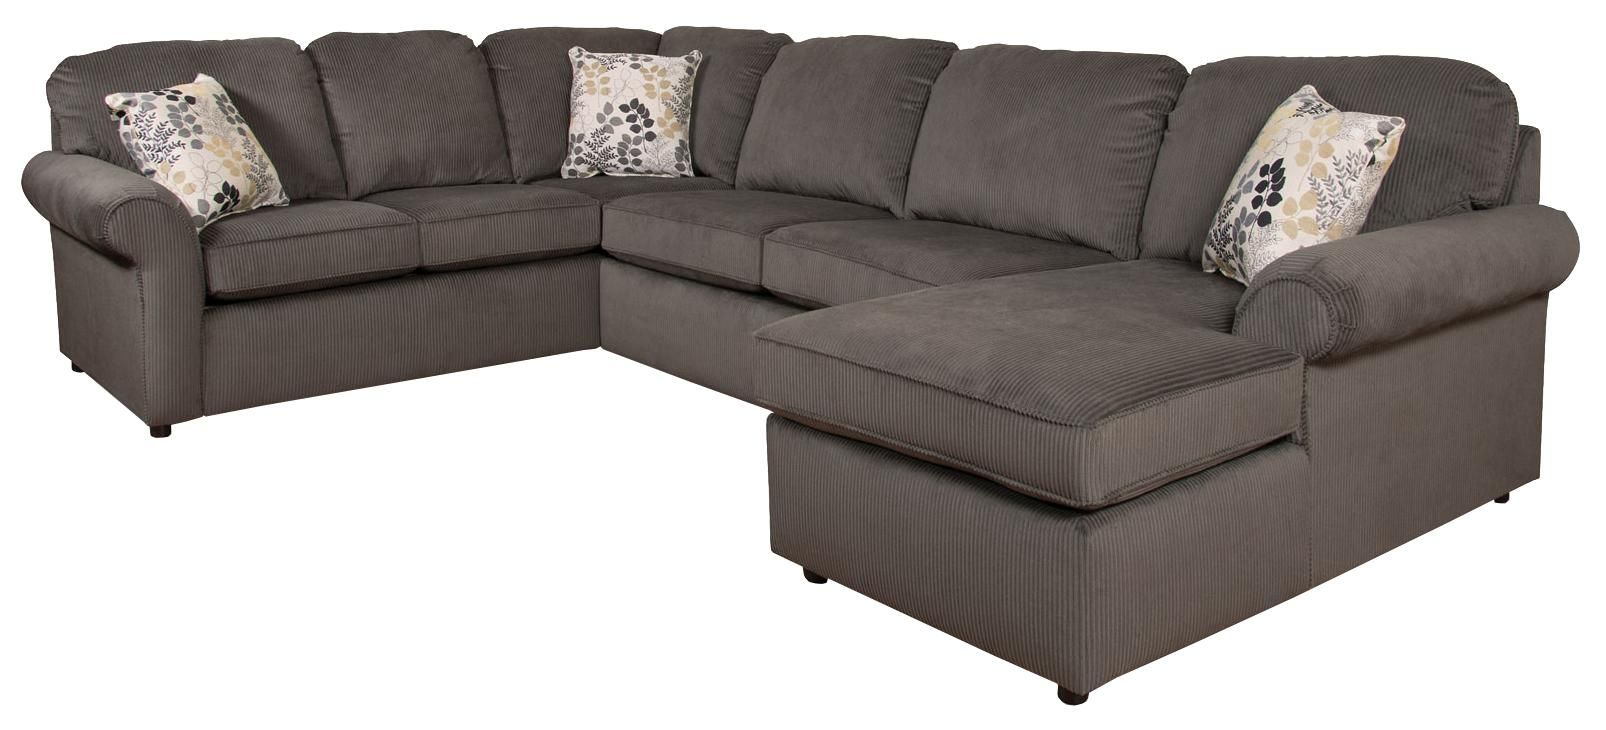 Malibu 5 6 Seat Right Side Chaise Sectional By England England